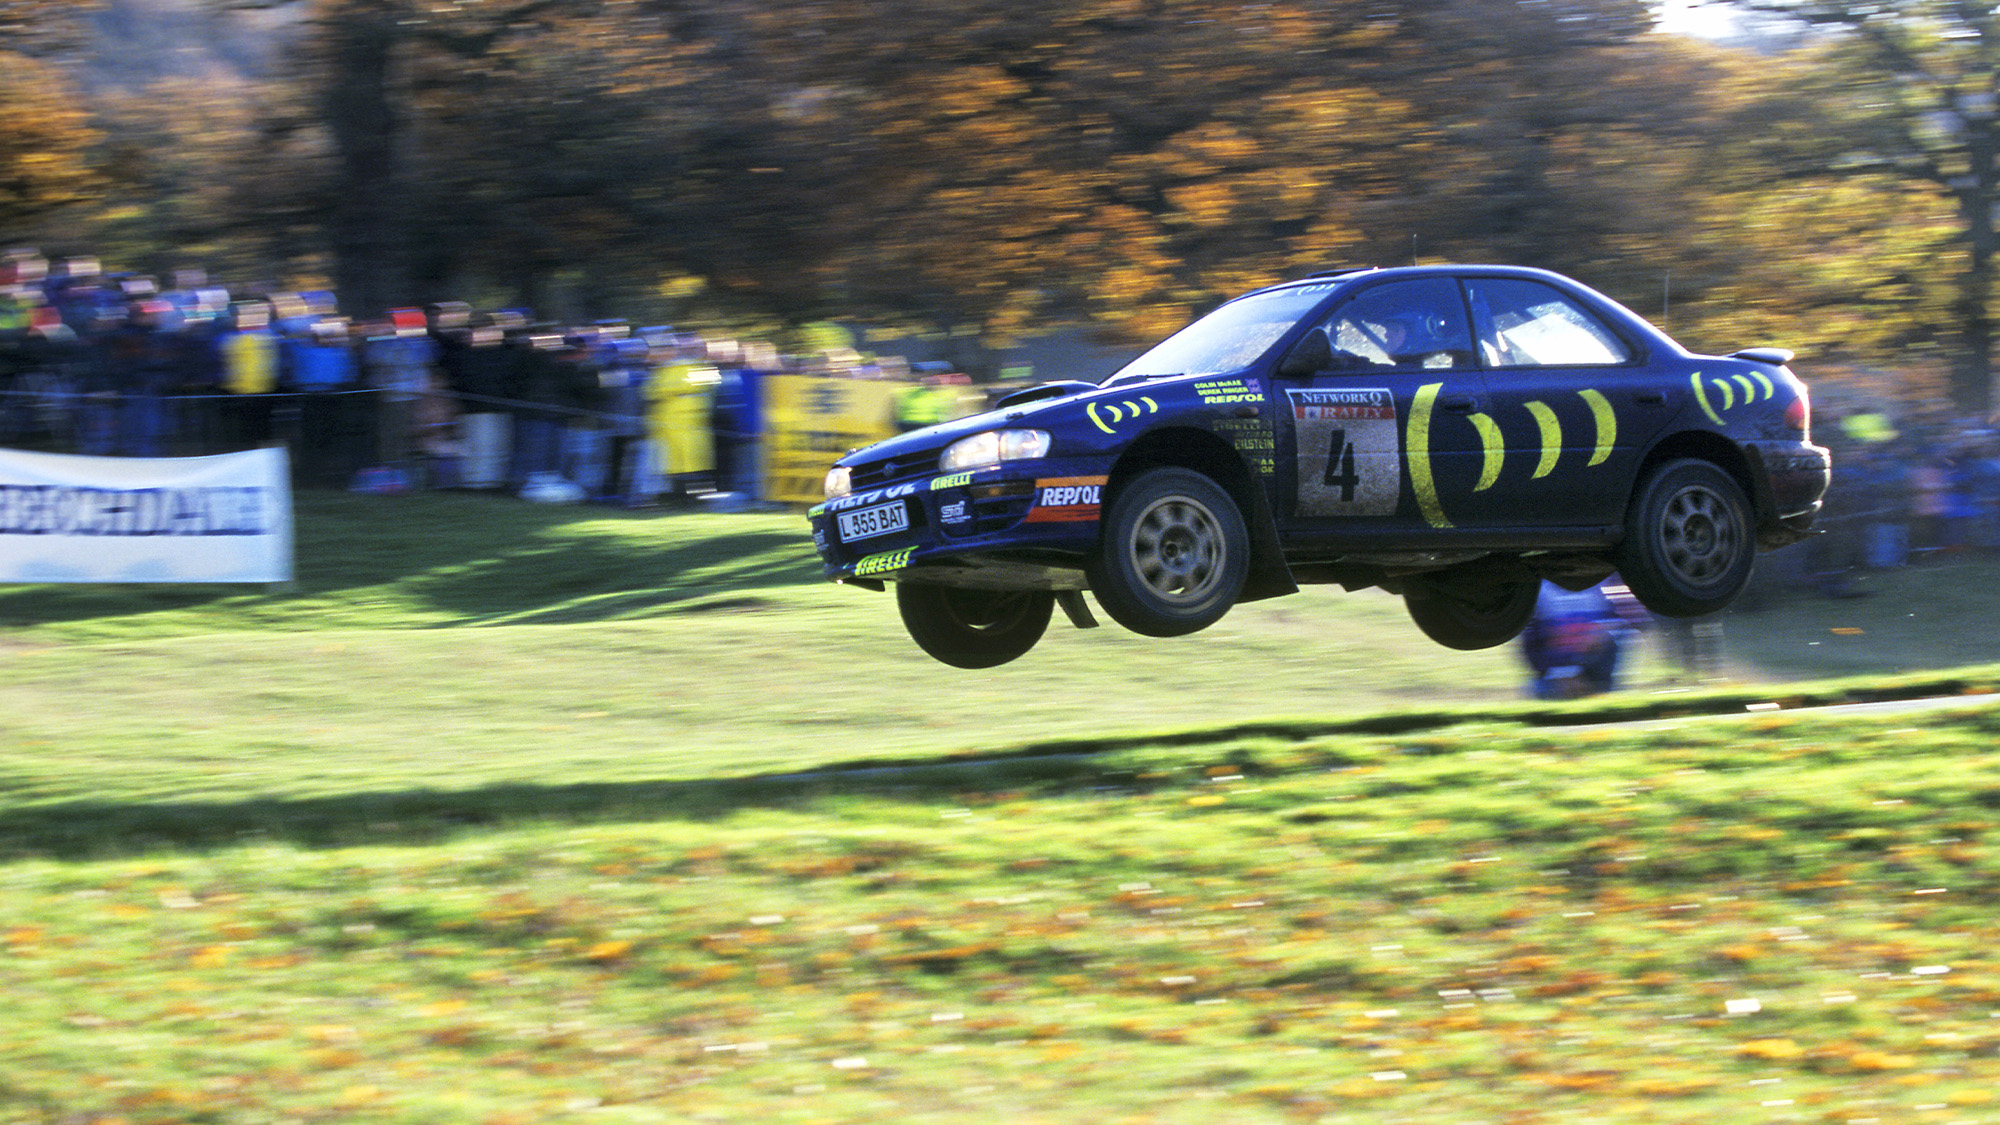 Subaru of Colin McRae in mid-air during the 1995 RAC Rally